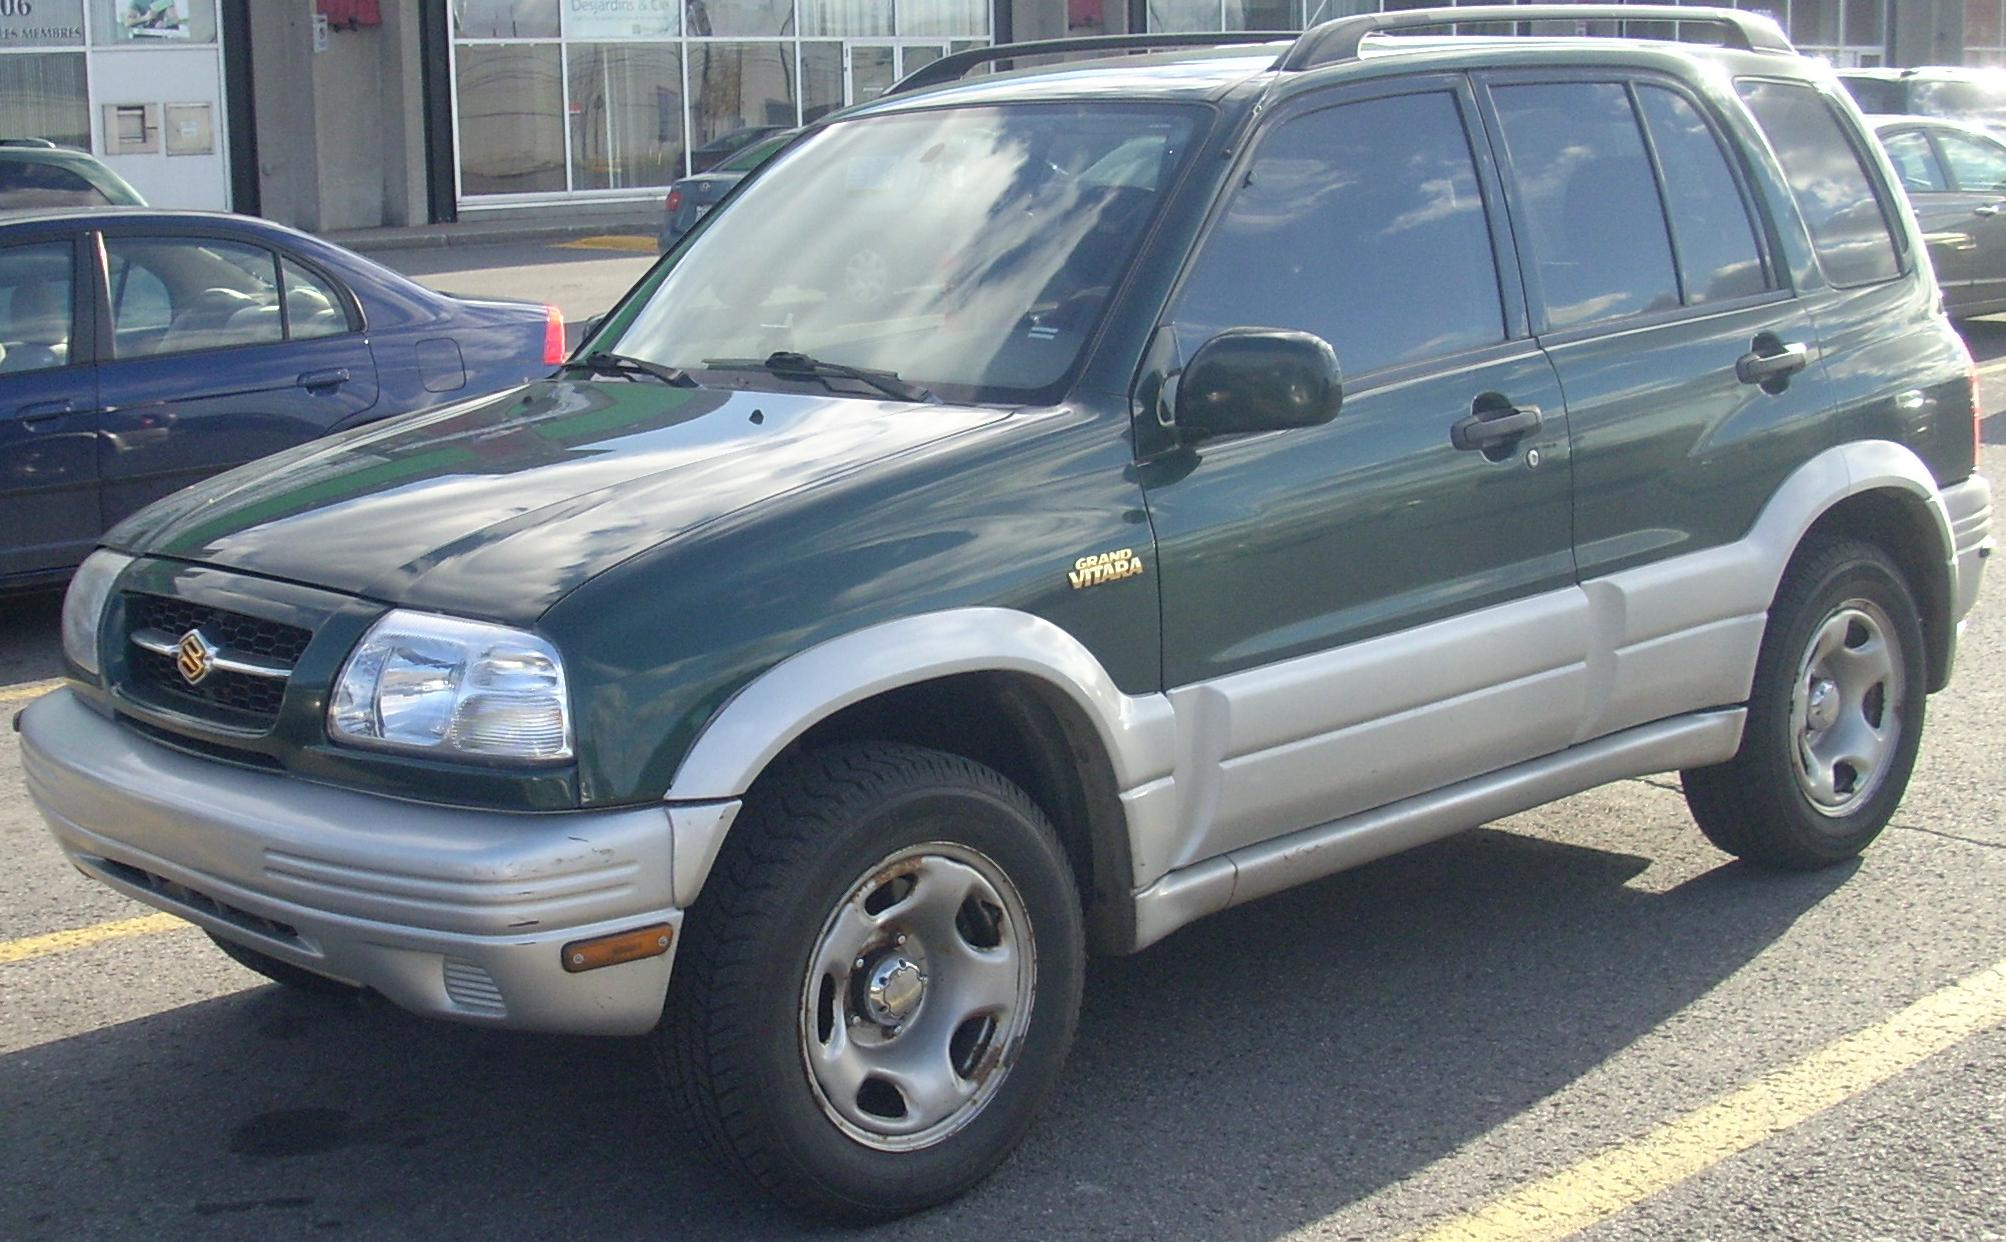 File:'99-'01 Suzuki Grand Vitara.JPG - Wikimedia Commons